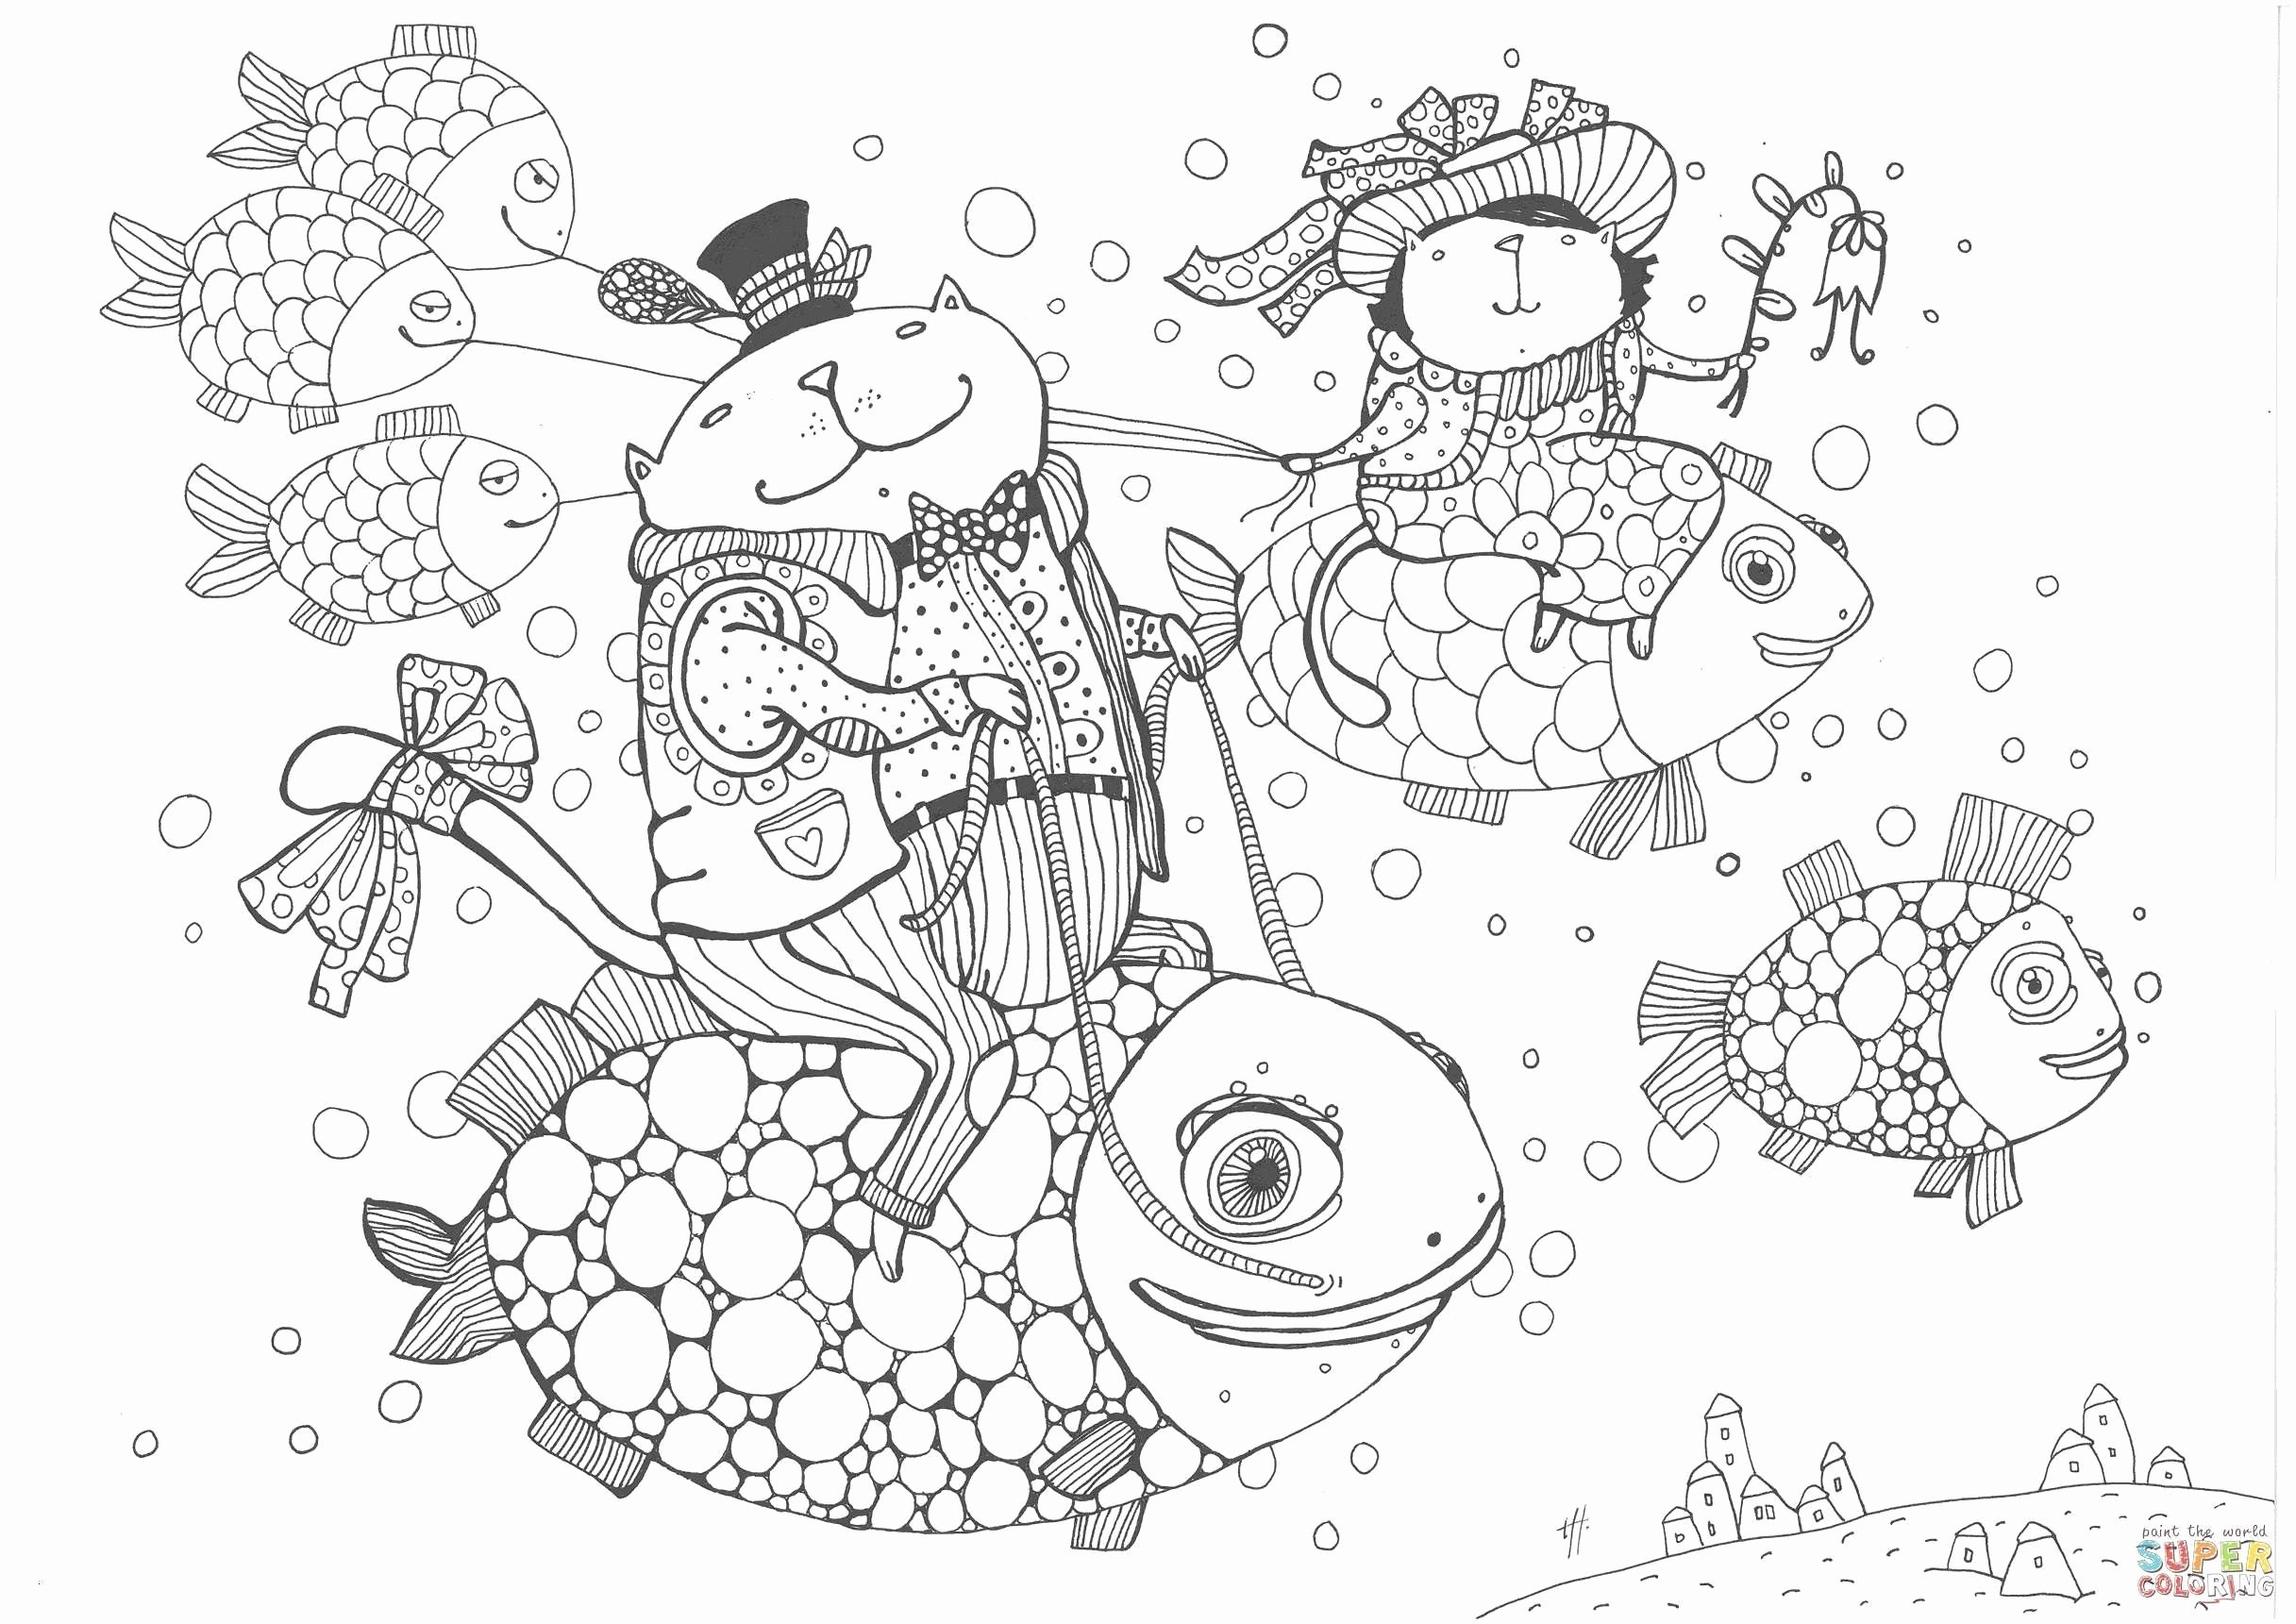 Joshua Fought The Battle Of Jericho Coloring Page Lovely Joshua Achan Coloring Pages Thebookisonthetable